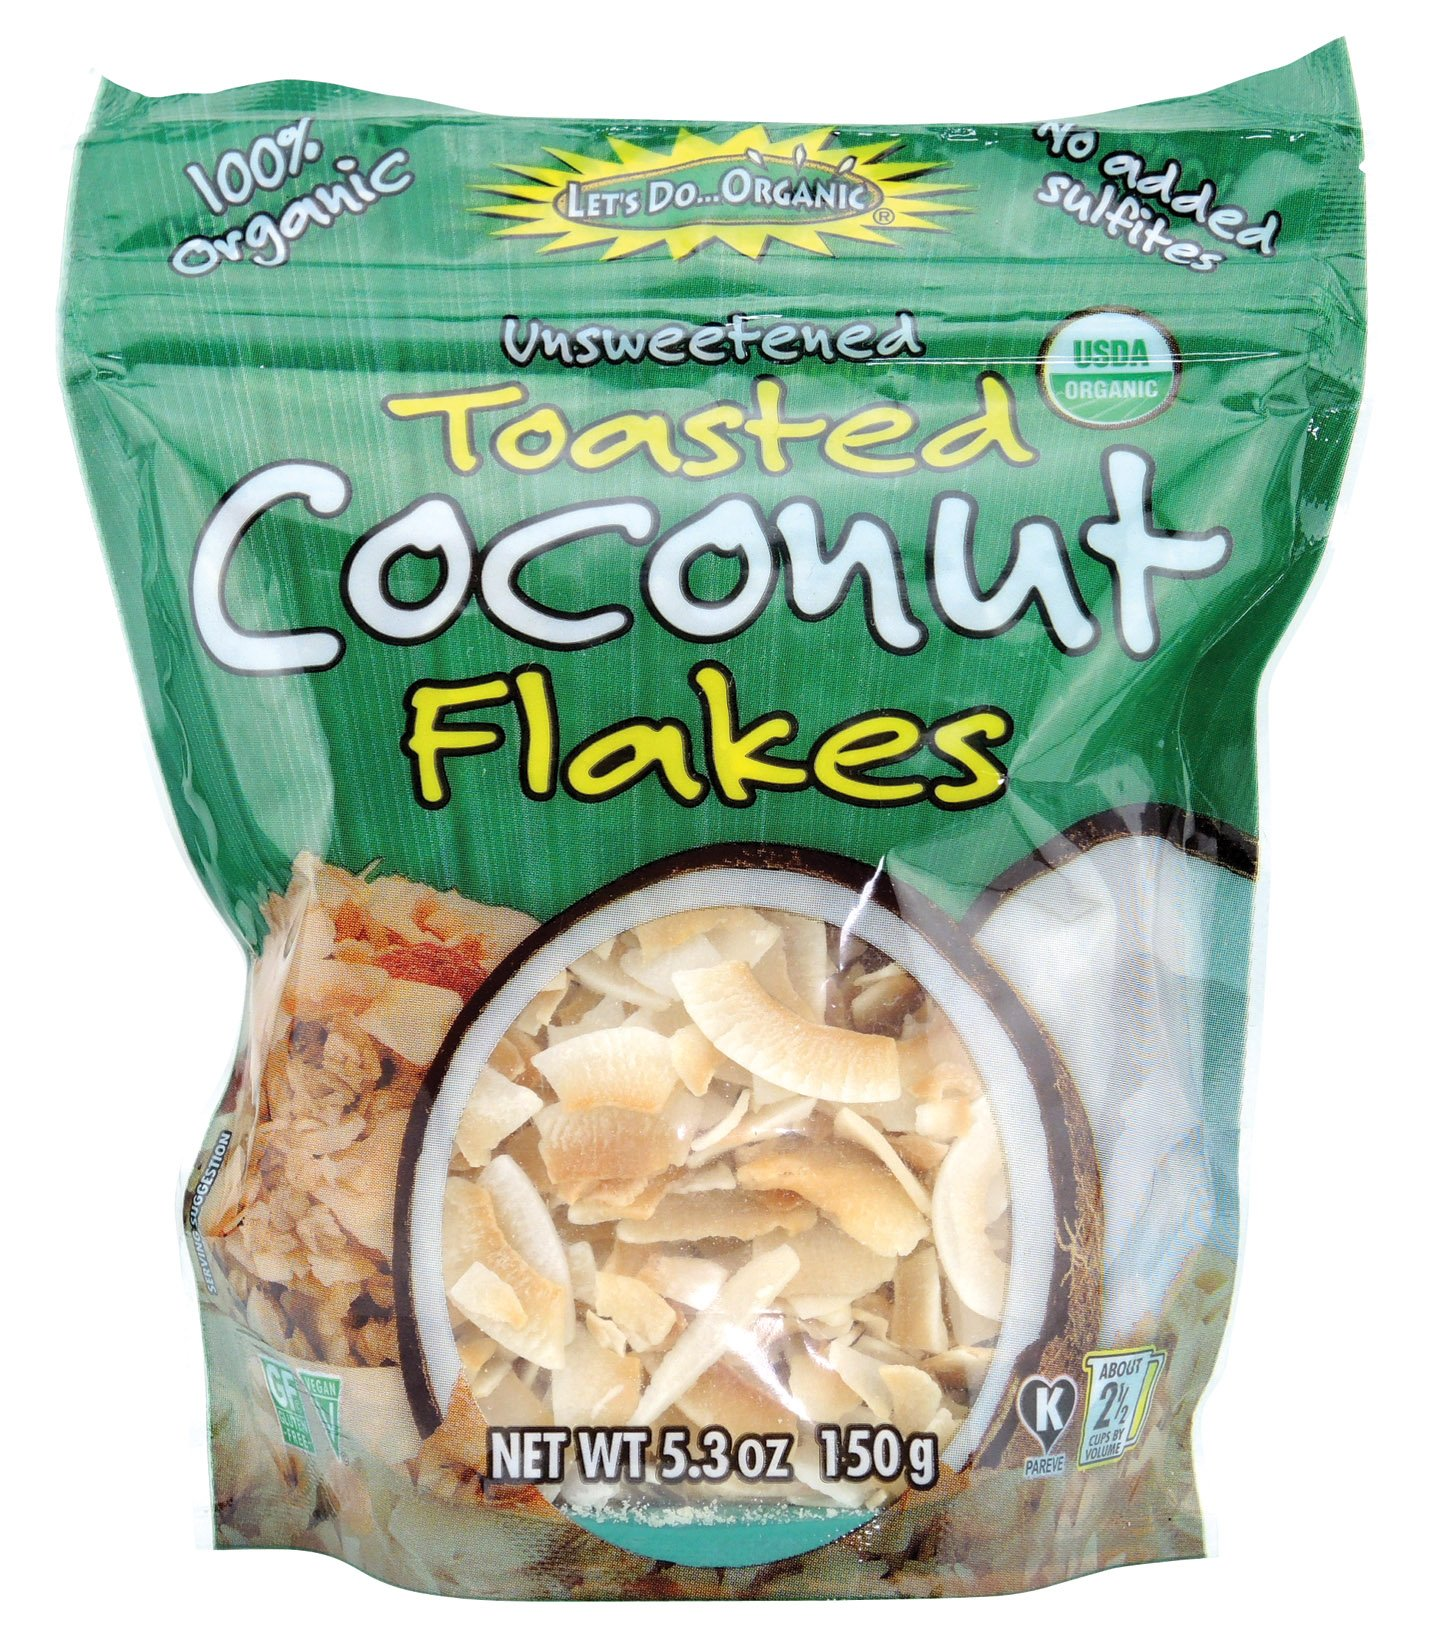 Let's Do Organic Organic Toasted Coconut Flakes, 5.3 Ounce (Pack of 6)